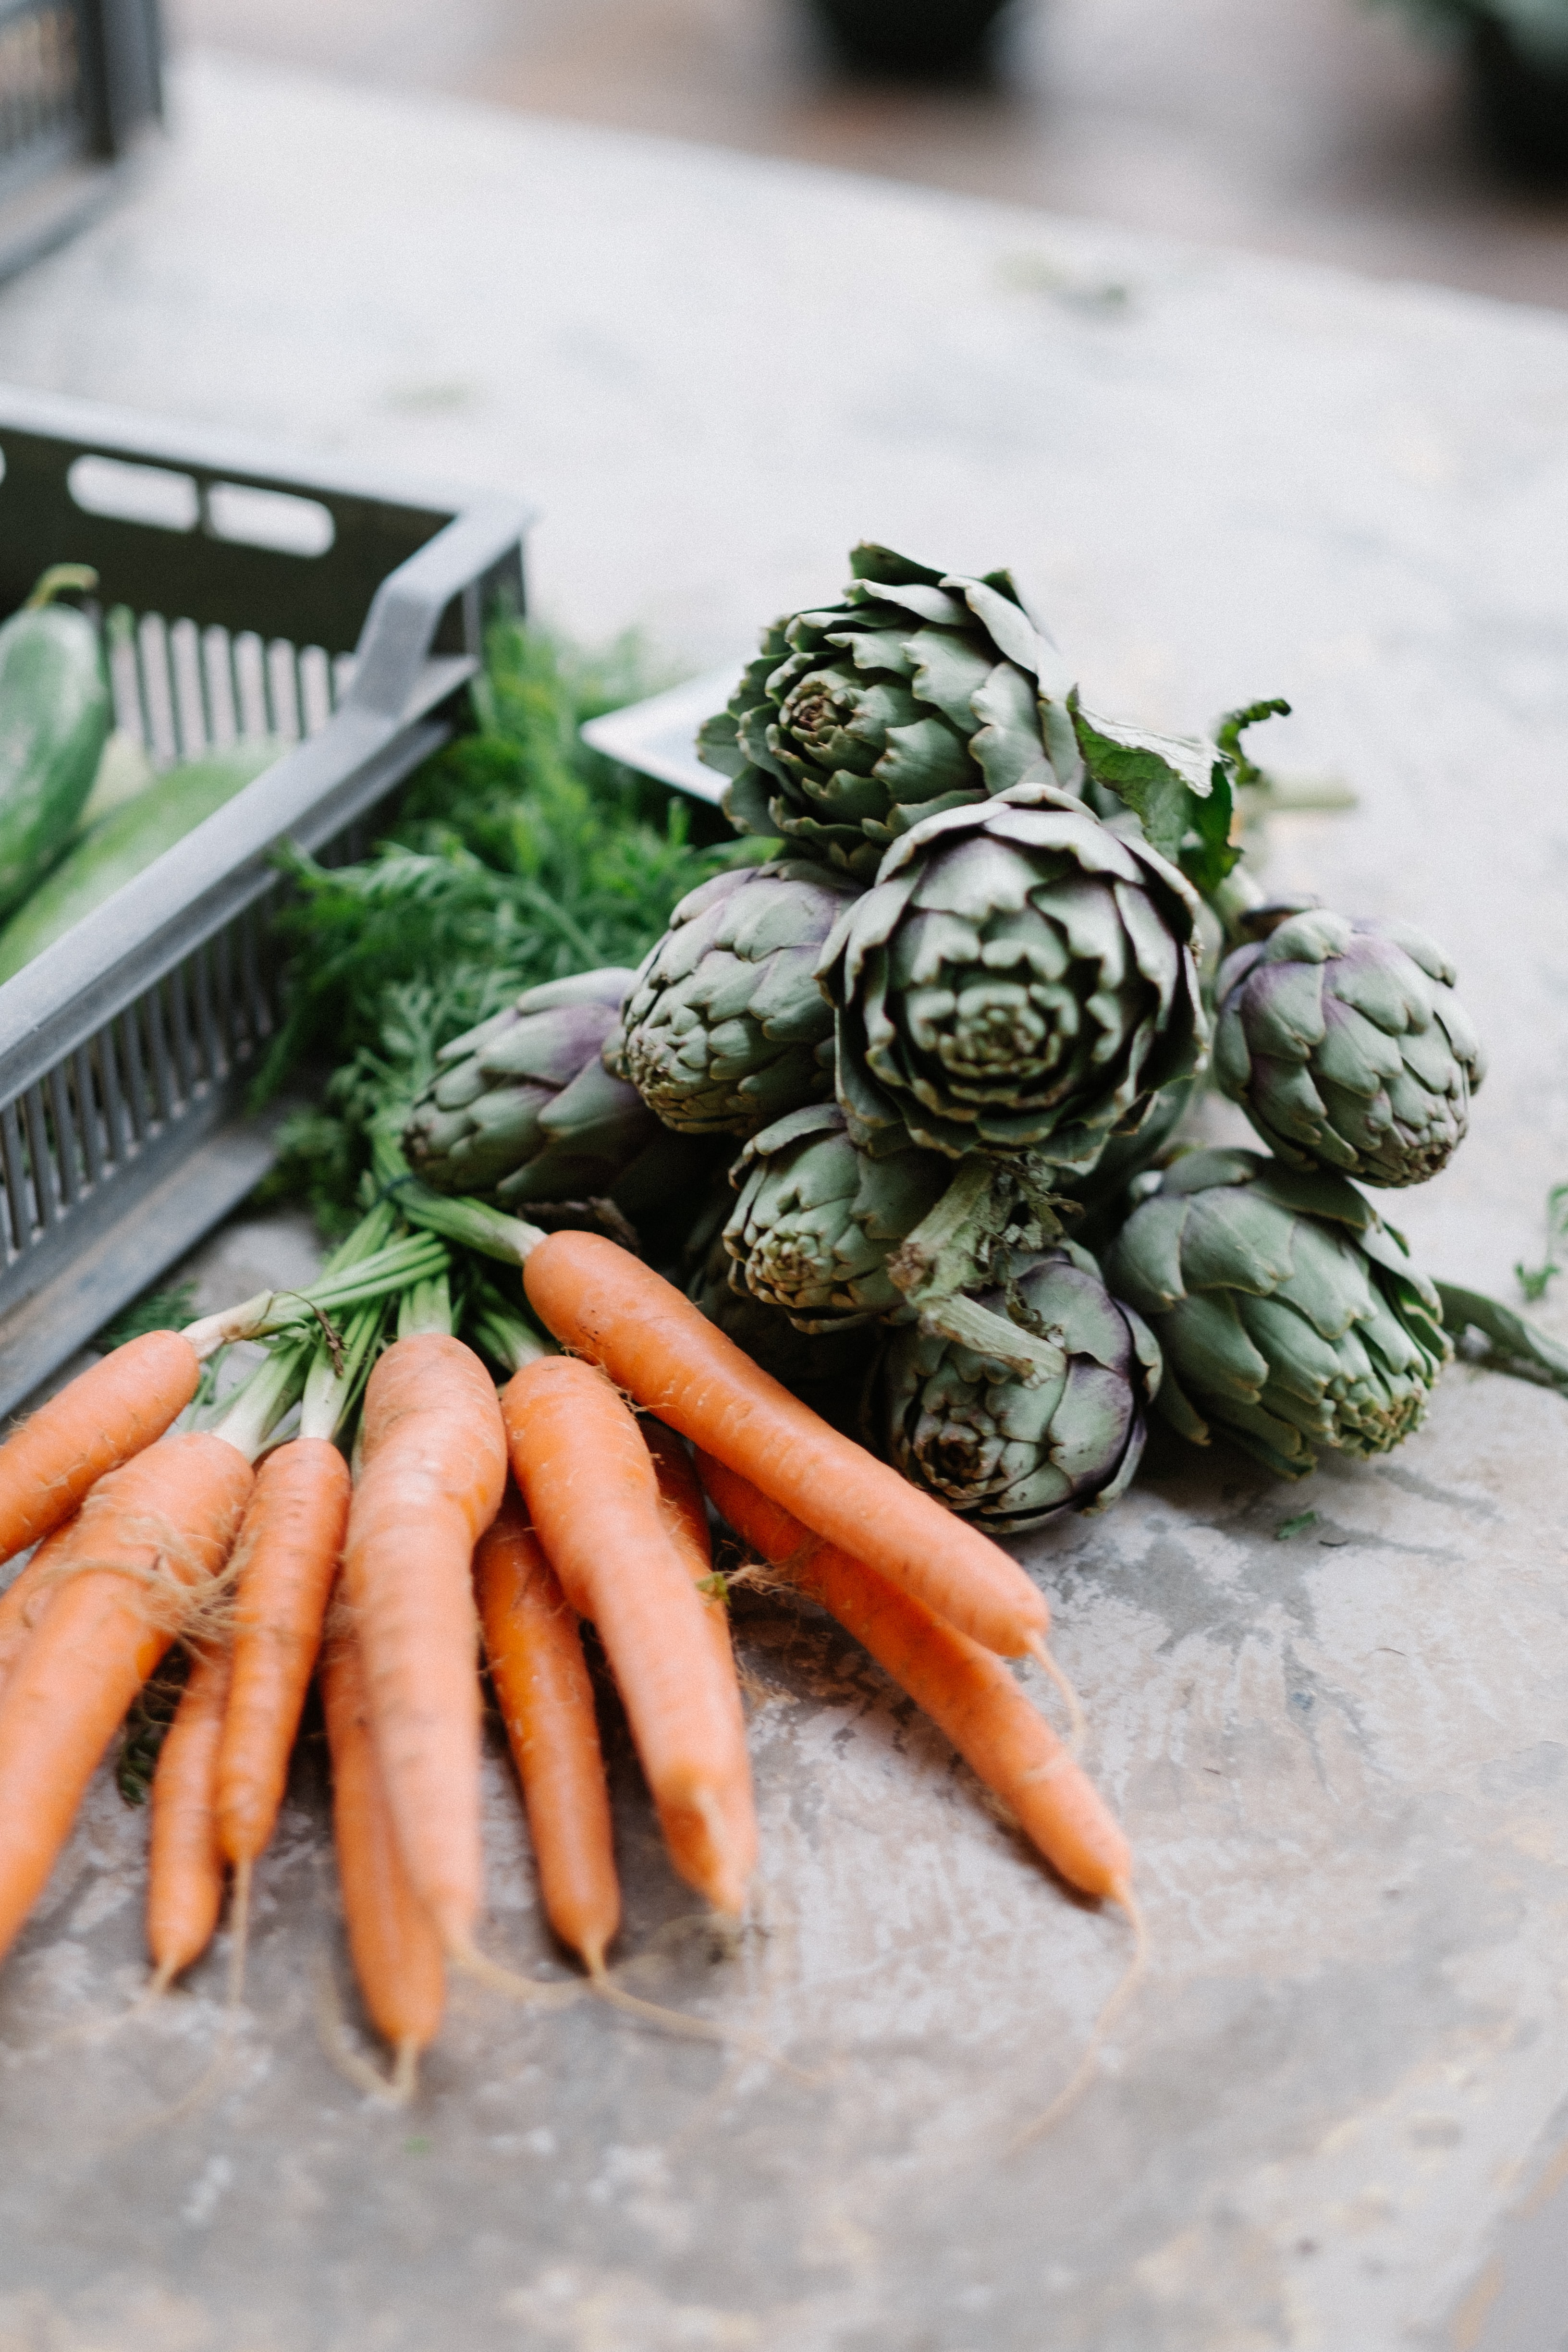 Artichoke, carrots, and fresh produce at the market ready to eat